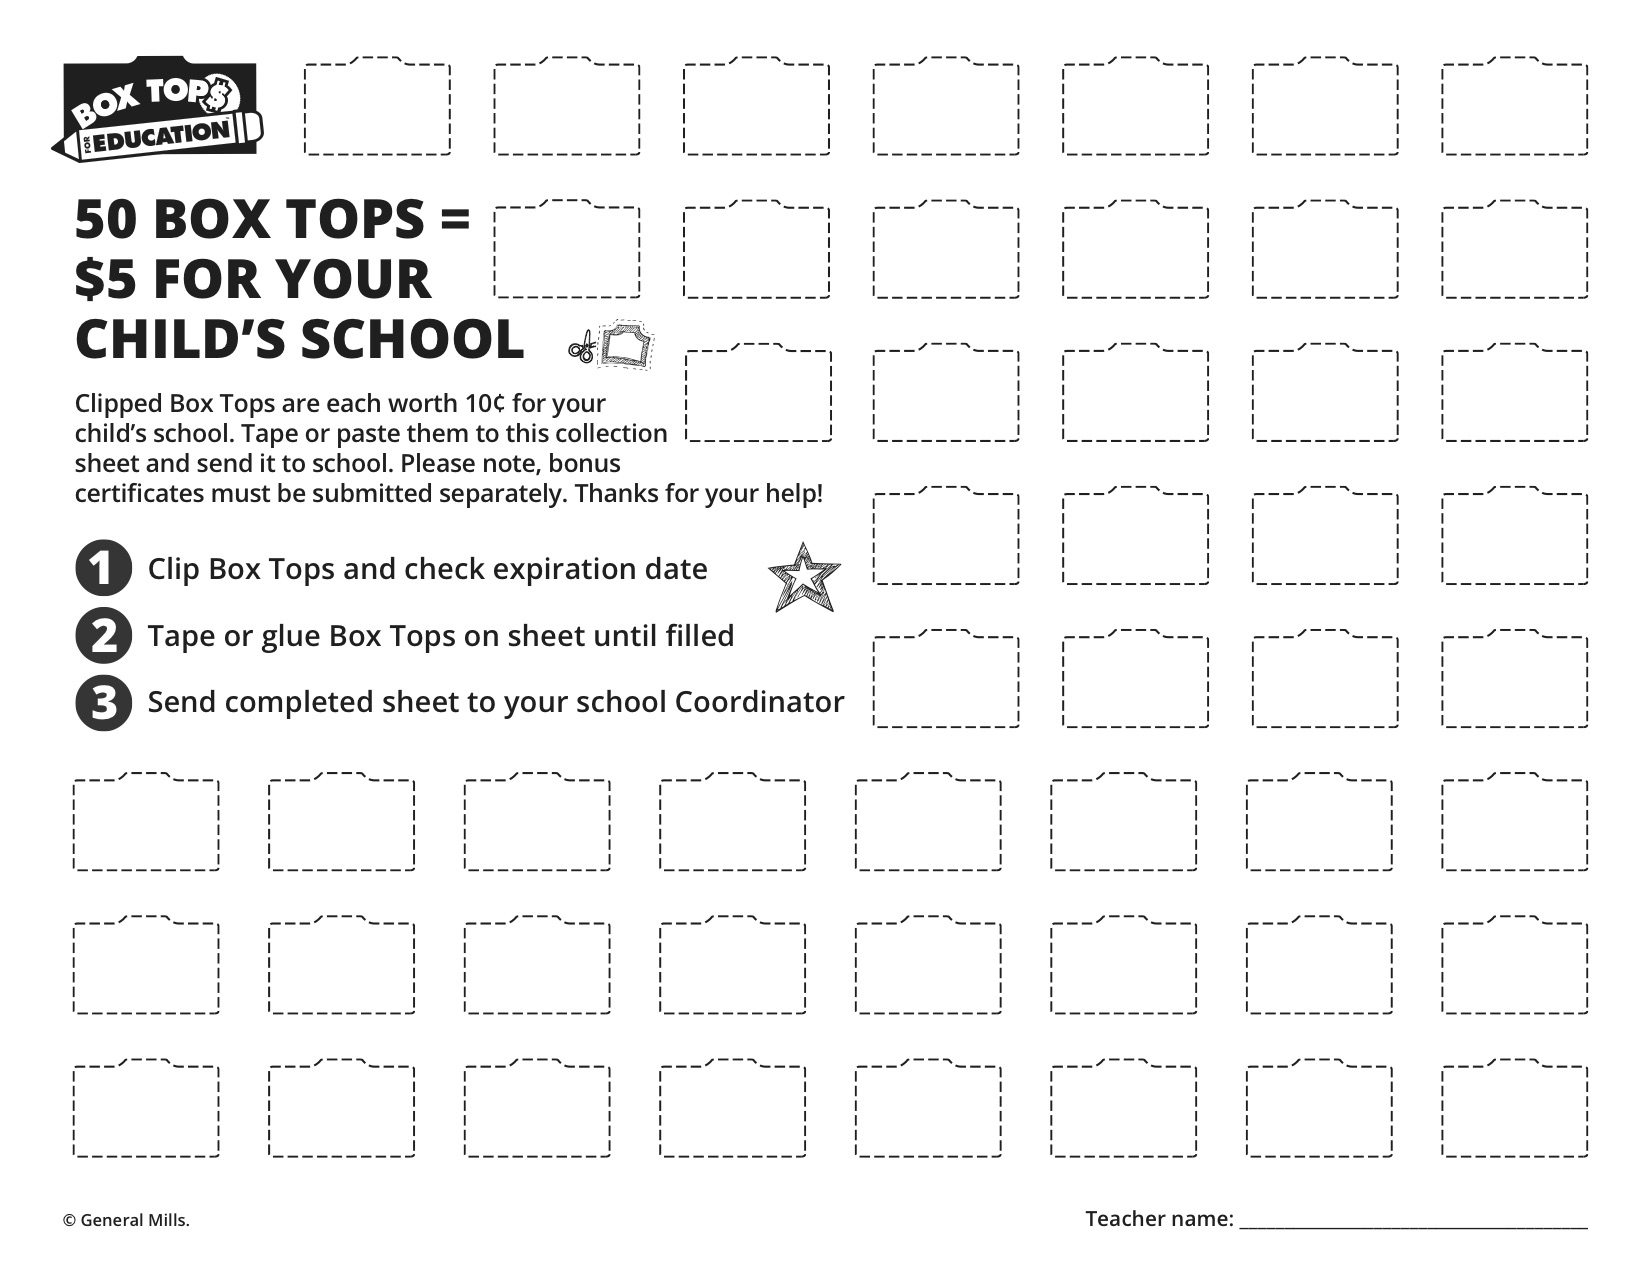 Easy Ways To Help Our School